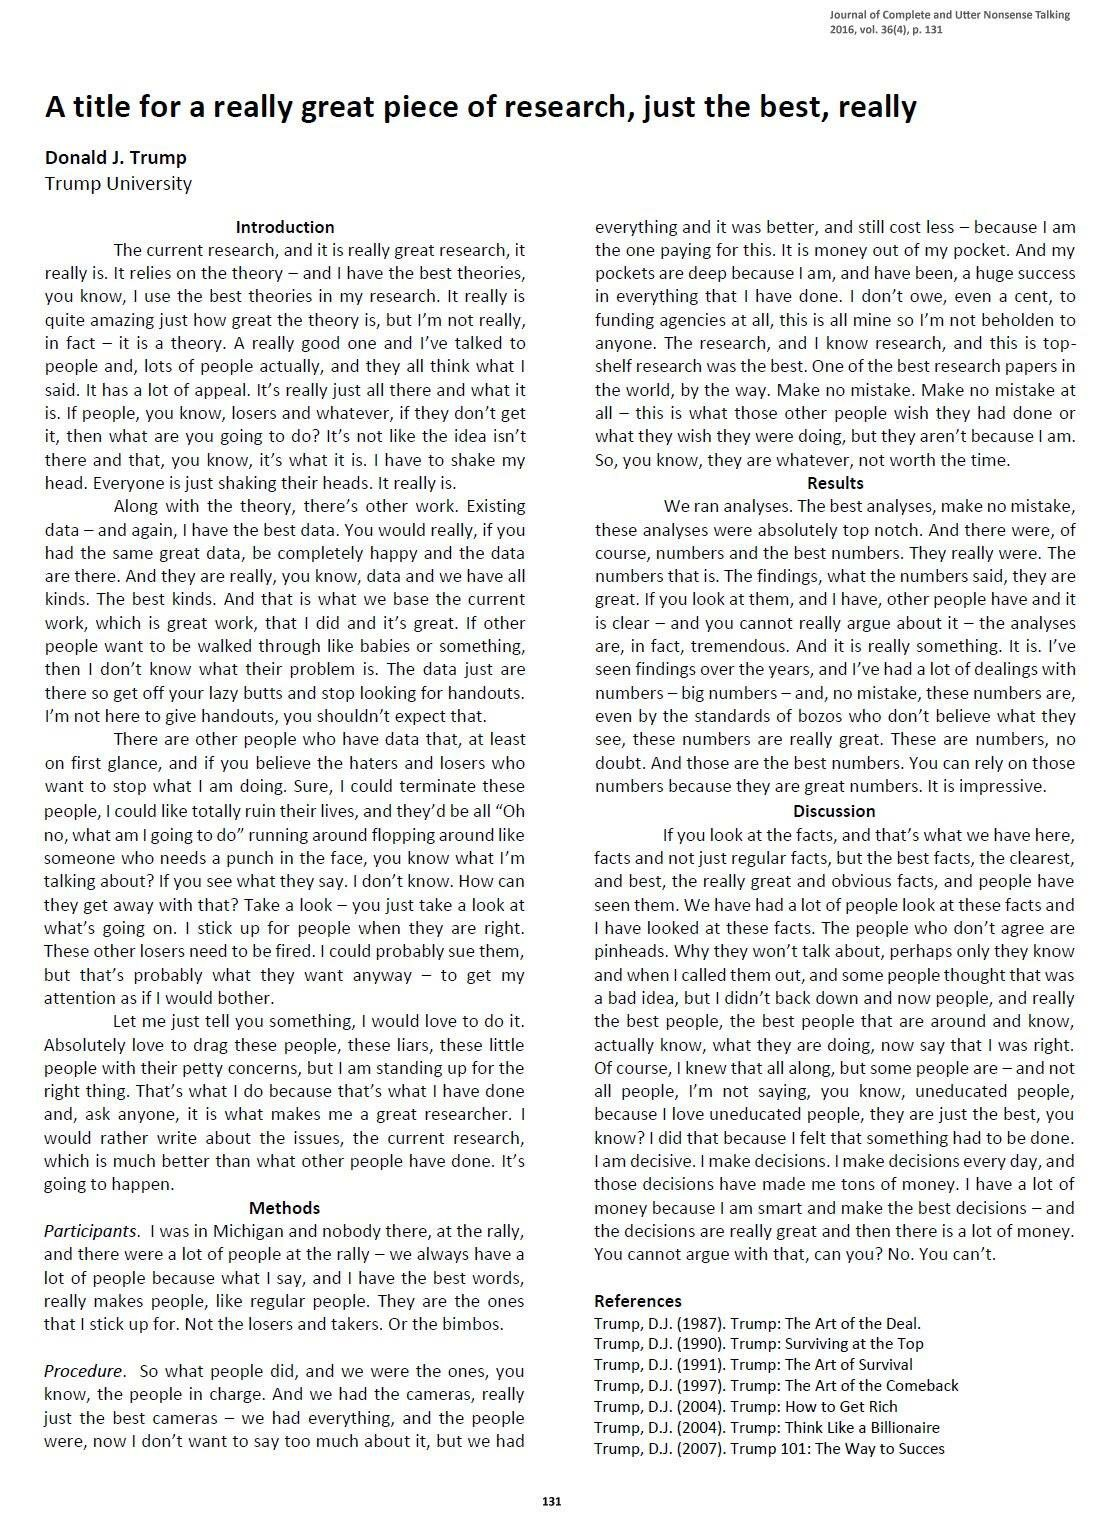 expository essay on how music affects mood 100% free papers on expository ] essays sample topics, paragraph introduction help, research & more  essays nonverbal communication essays pakistan of my dr essays proper haircut in schools essays social time essays sugar affect our mood essays technology advancement  discrimination essay racism essay expository essay expository essay.